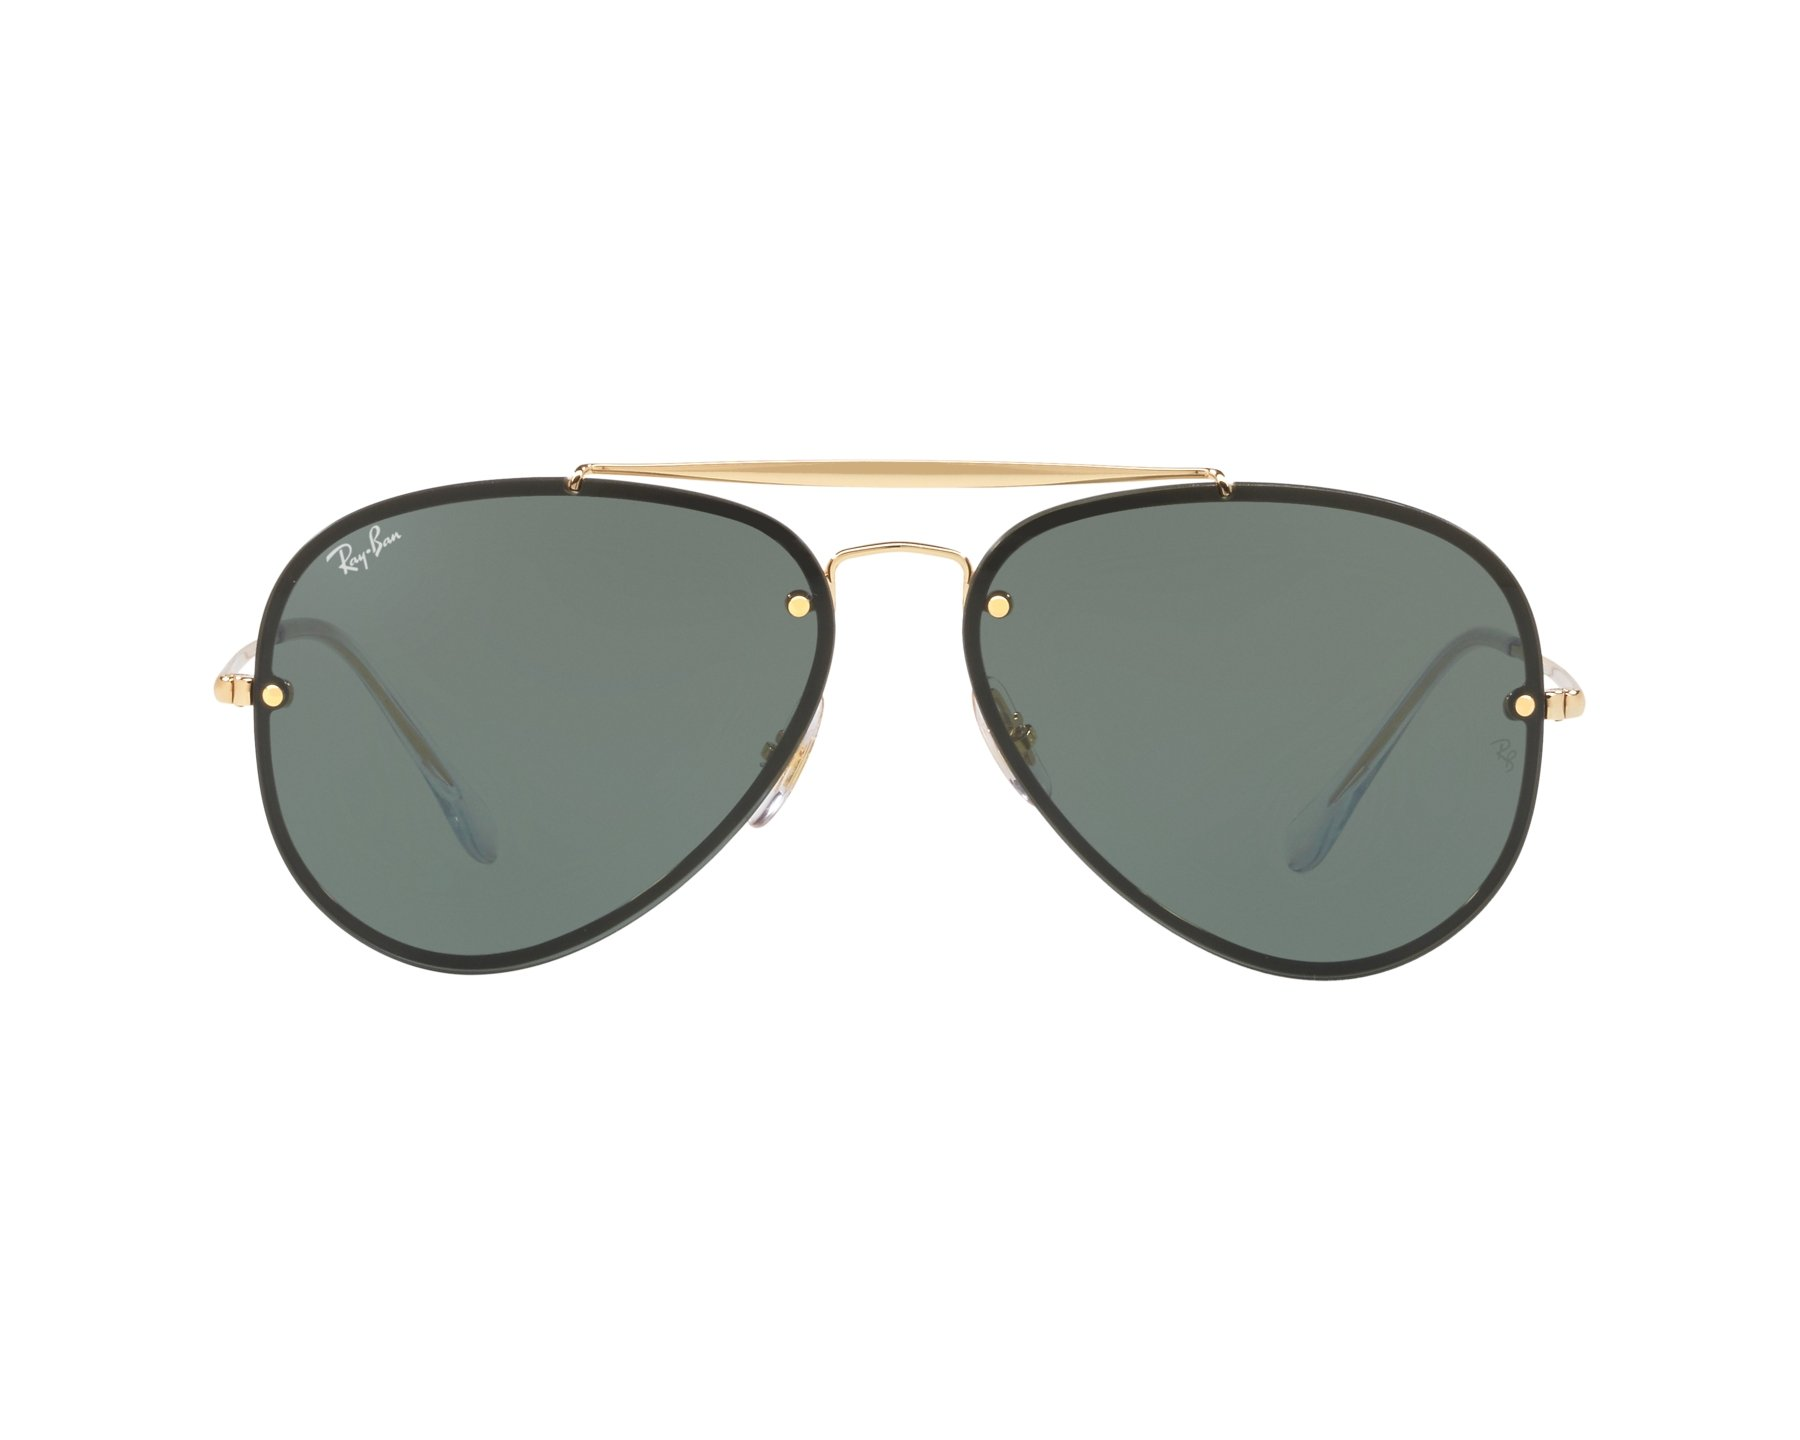 eec9e86d447 Sunglasses Ray-Ban RB-3584-N 905071 58-13 Gold 360 degree